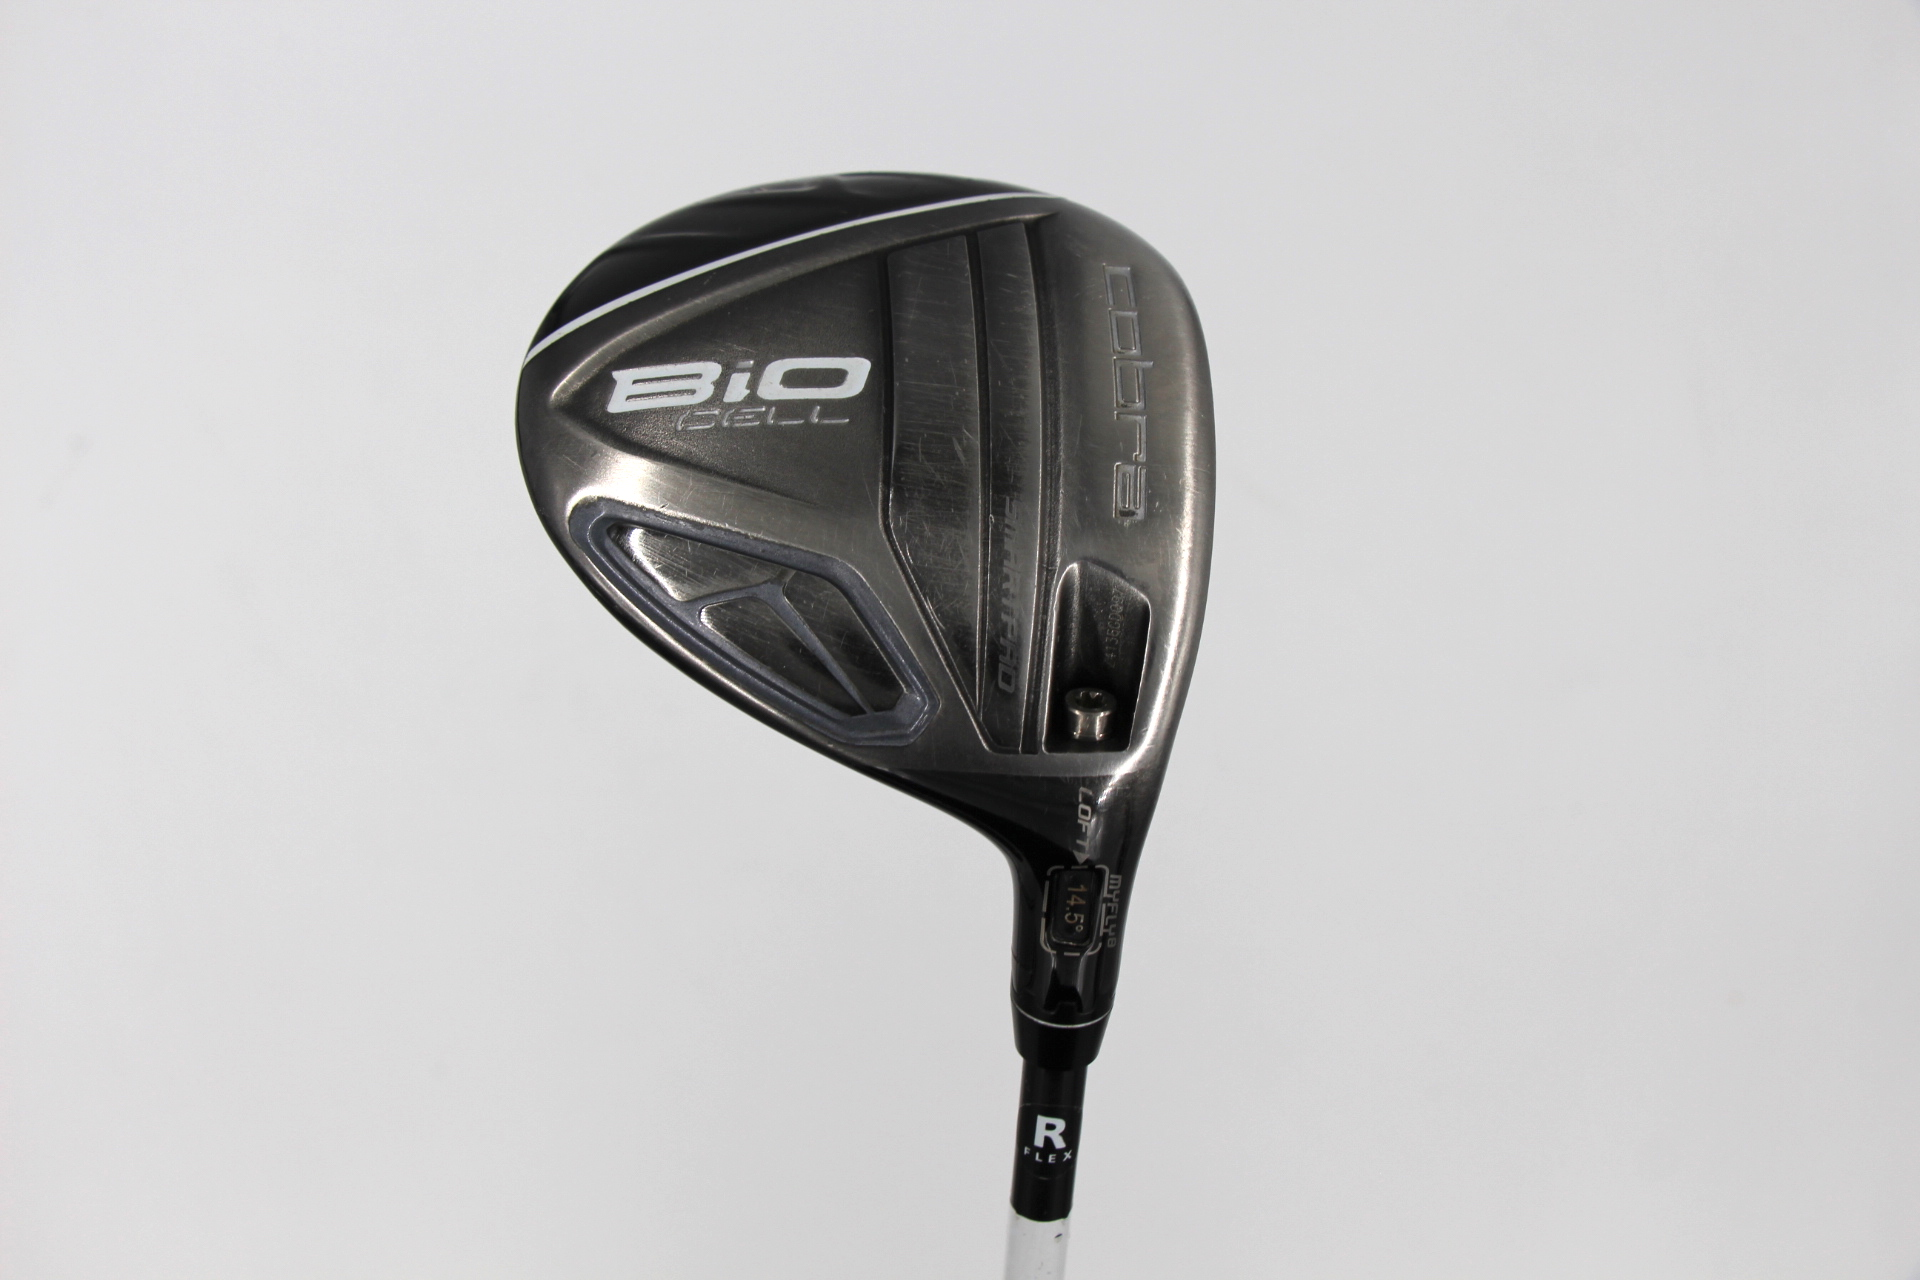 Cobra Bio Cell 3-Wood